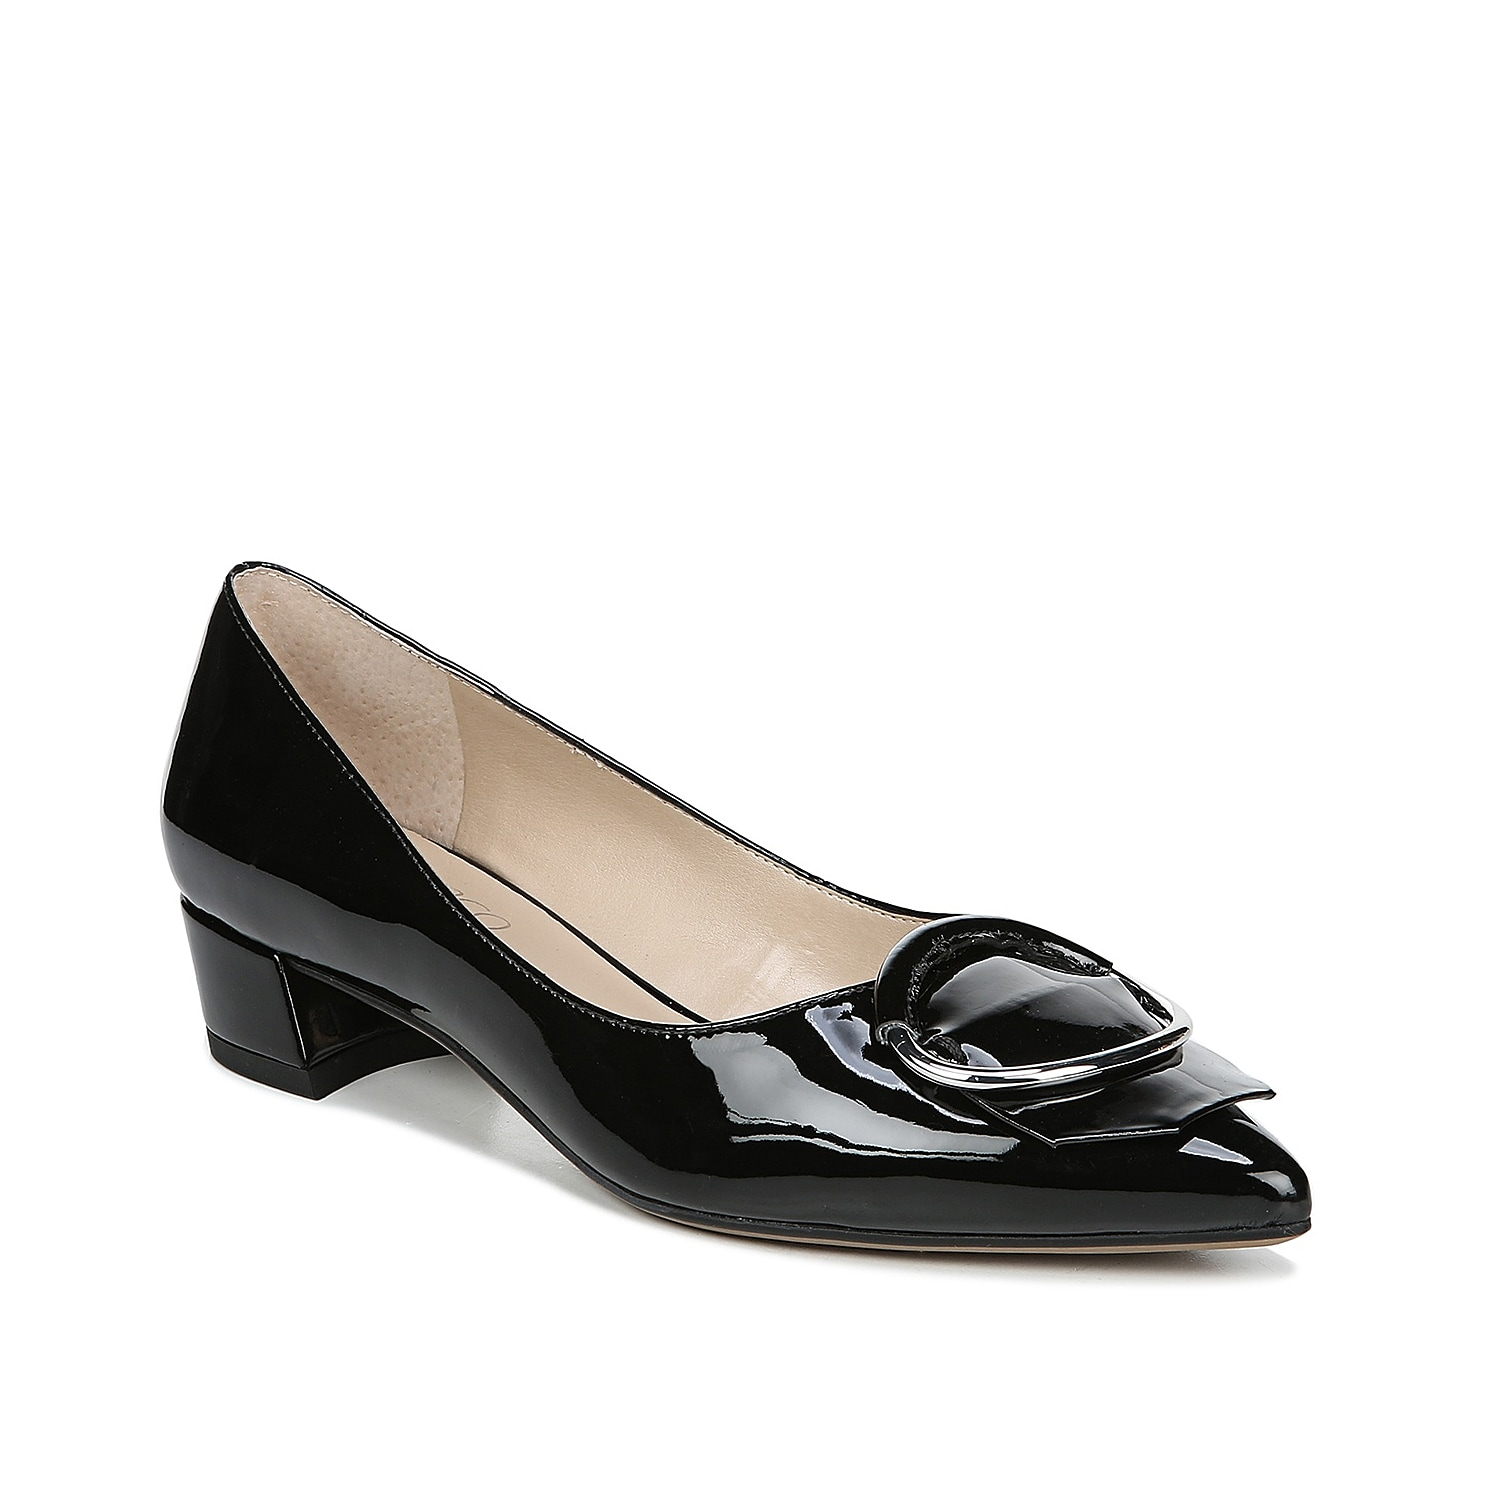 This ladylike flat from Franco Sarto polishes every work outfit! The Vino pump flaunts an oversized metal ring and slightly curved heel to create visual interest.